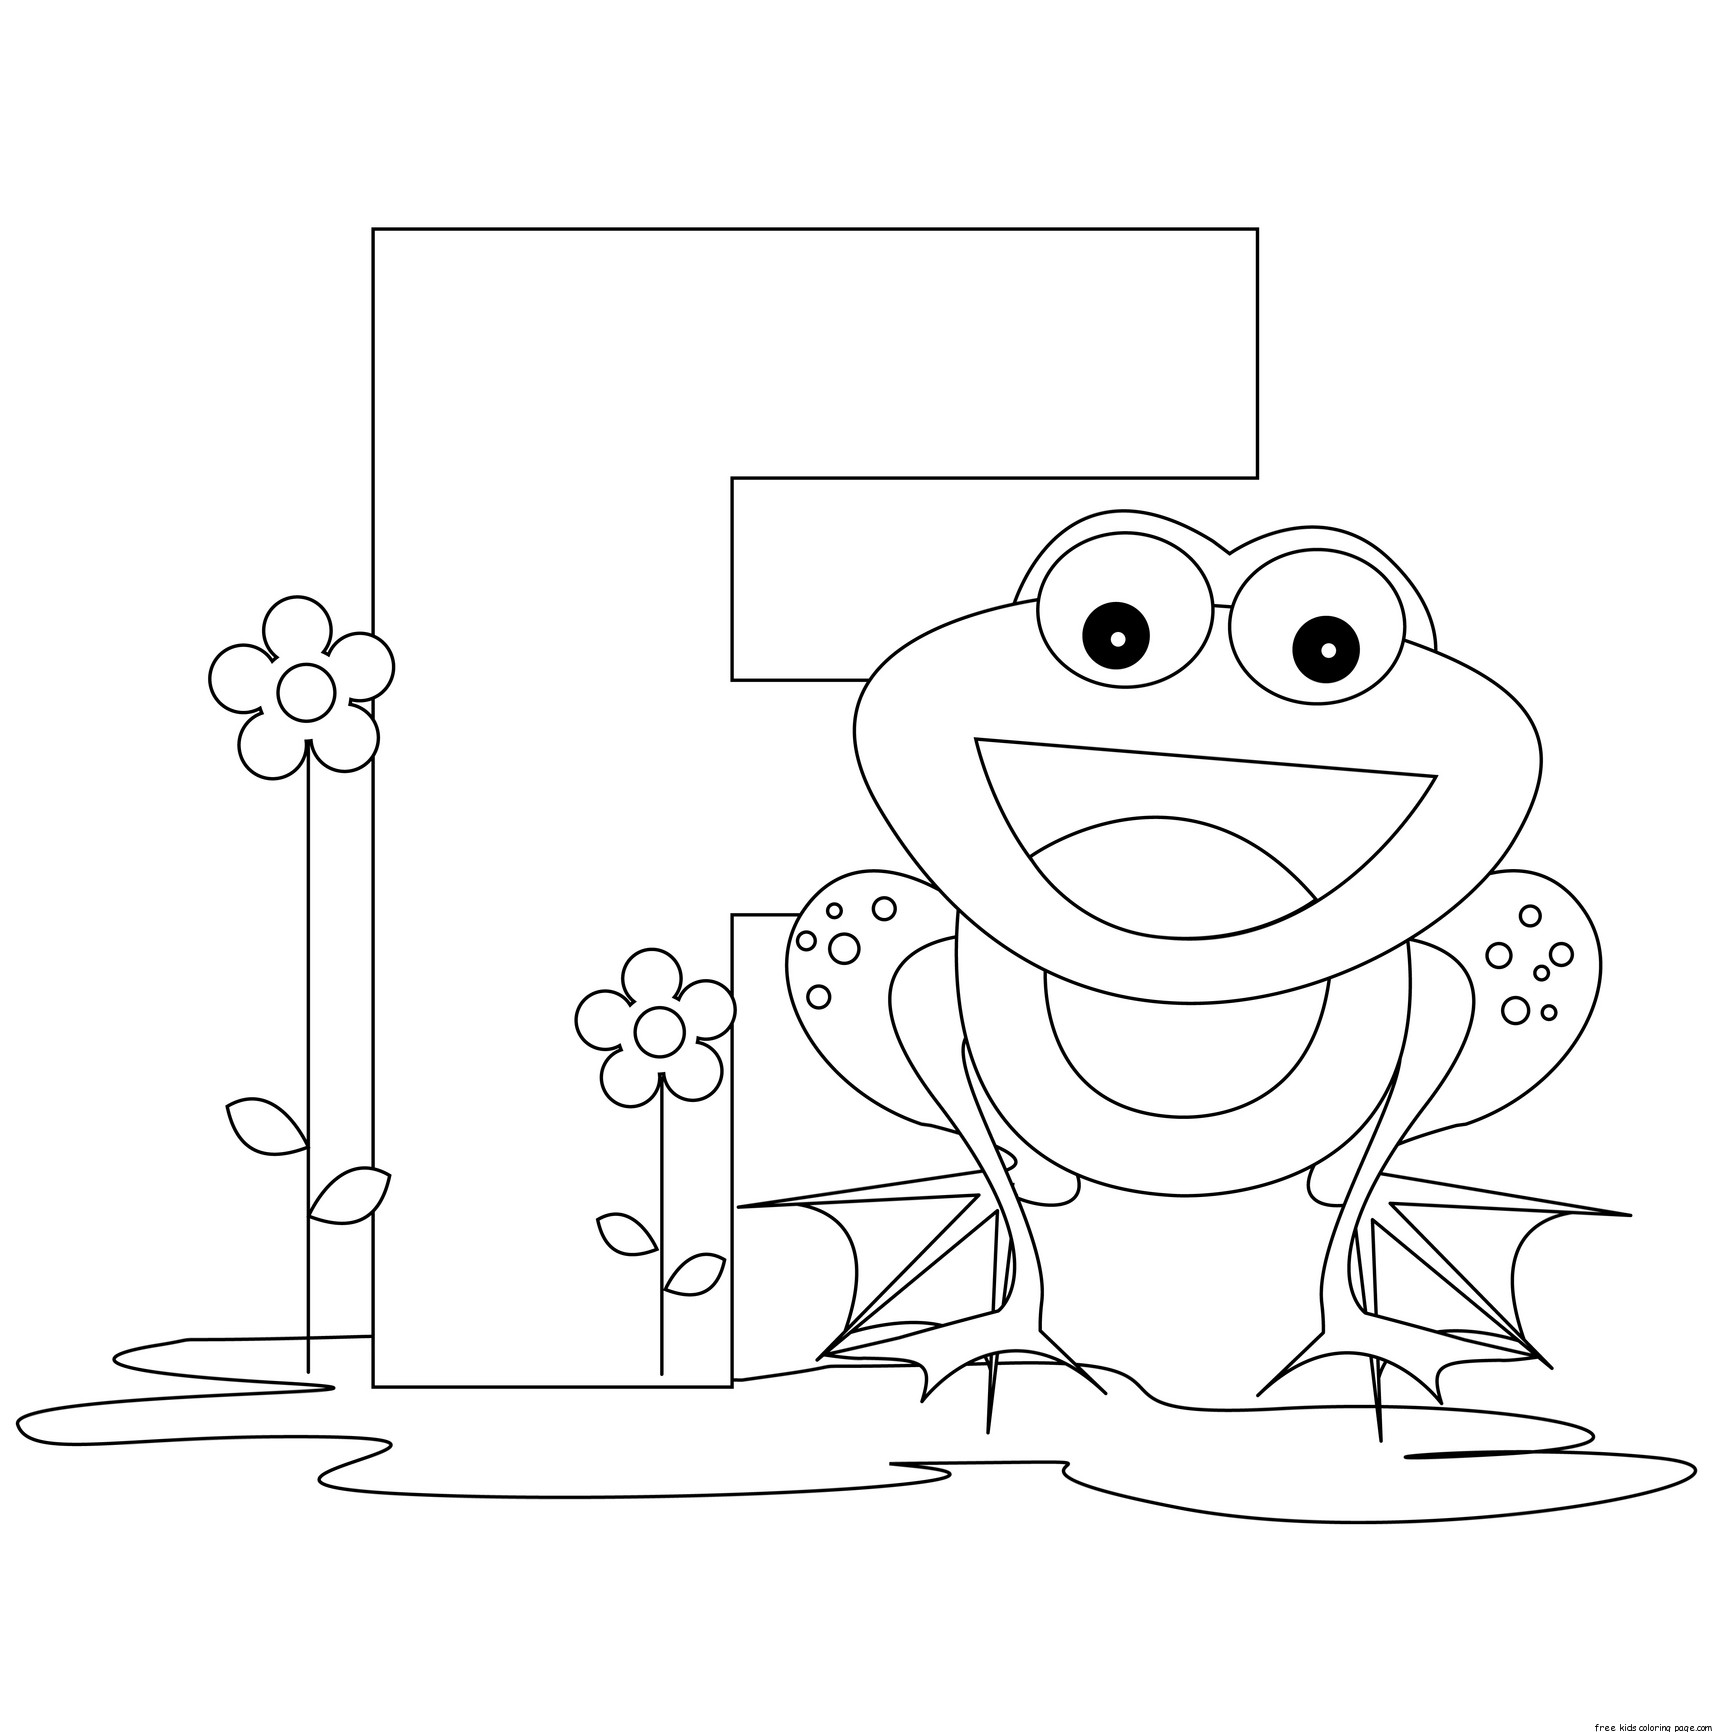 Pritnable alphabet letter f preschool activities for Alphabet pages to color